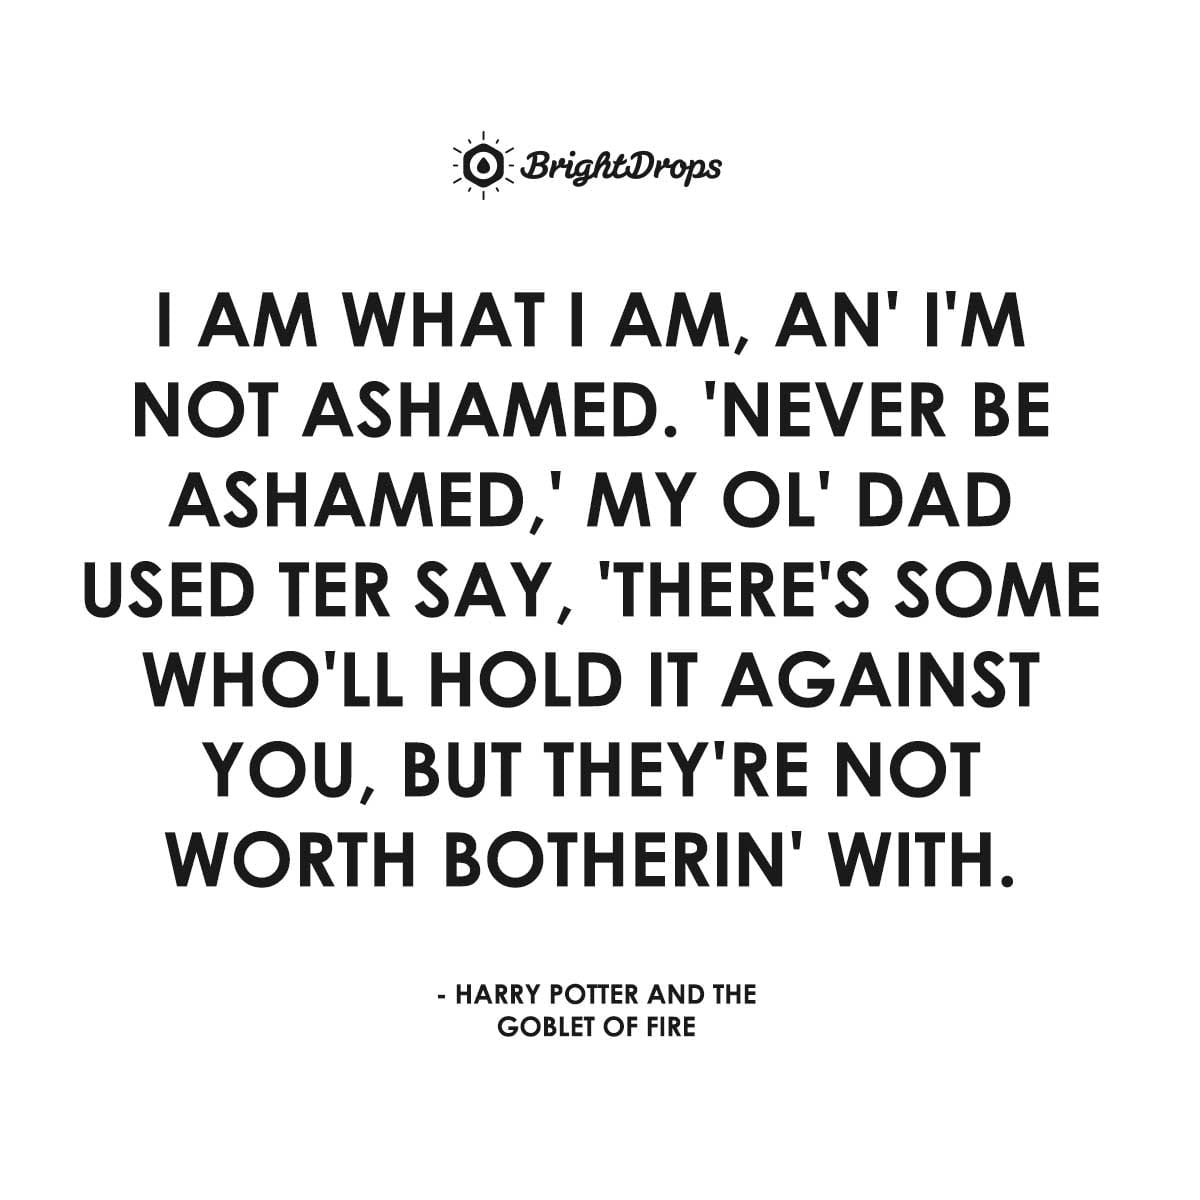 I am what I am, an' I'm not ashamed. 'Never be ashamed,' my ol' dad used ter say, 'there's some who'll hold it against you, but they're not worth botherin' with. - Harry Potter and the Goblet of Fire